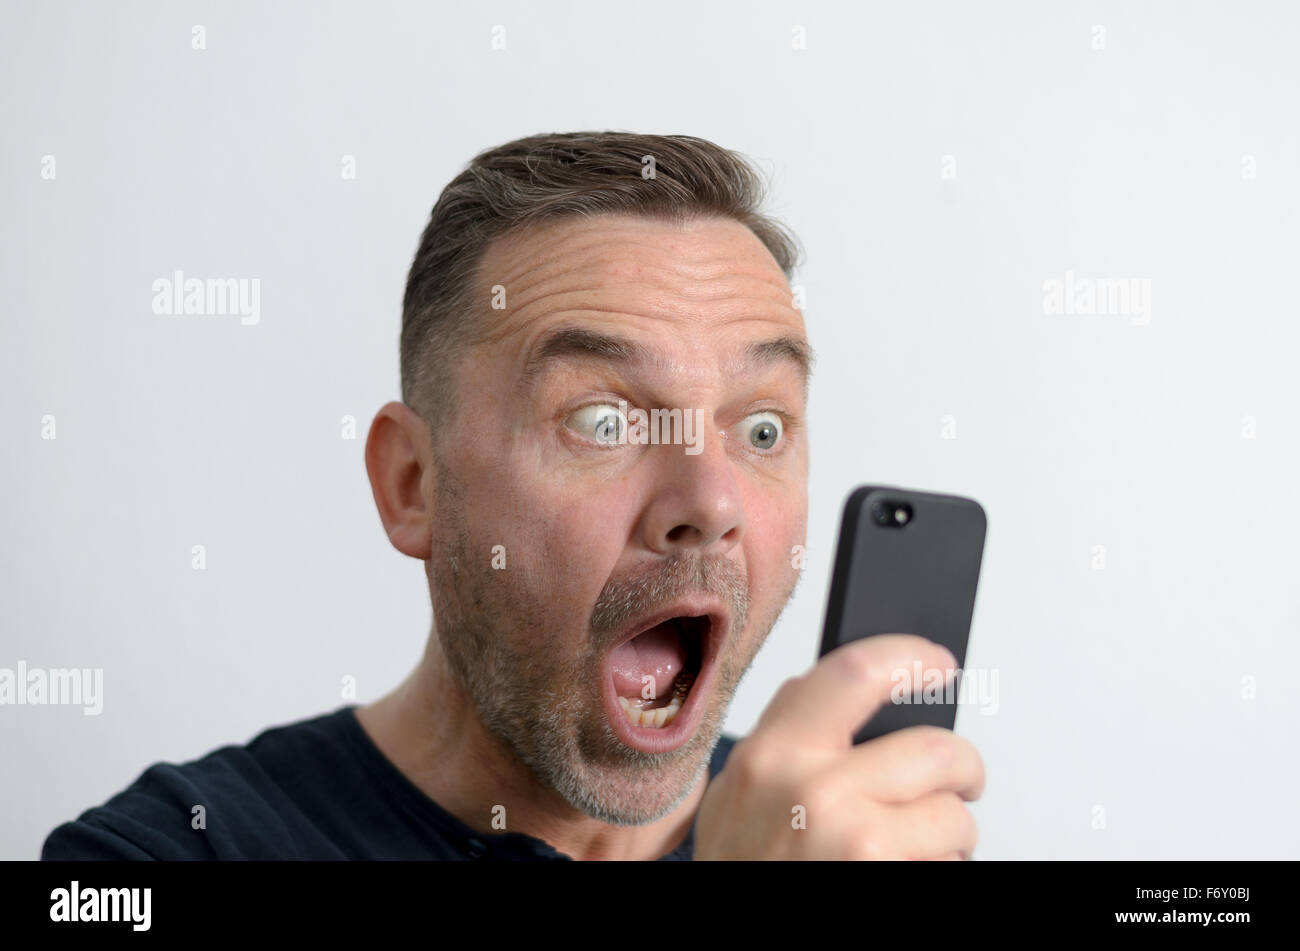 Surprised funny middle-aged man with blue eyes and a shocked facial expression looking at the screen of his mobile - Stock Image